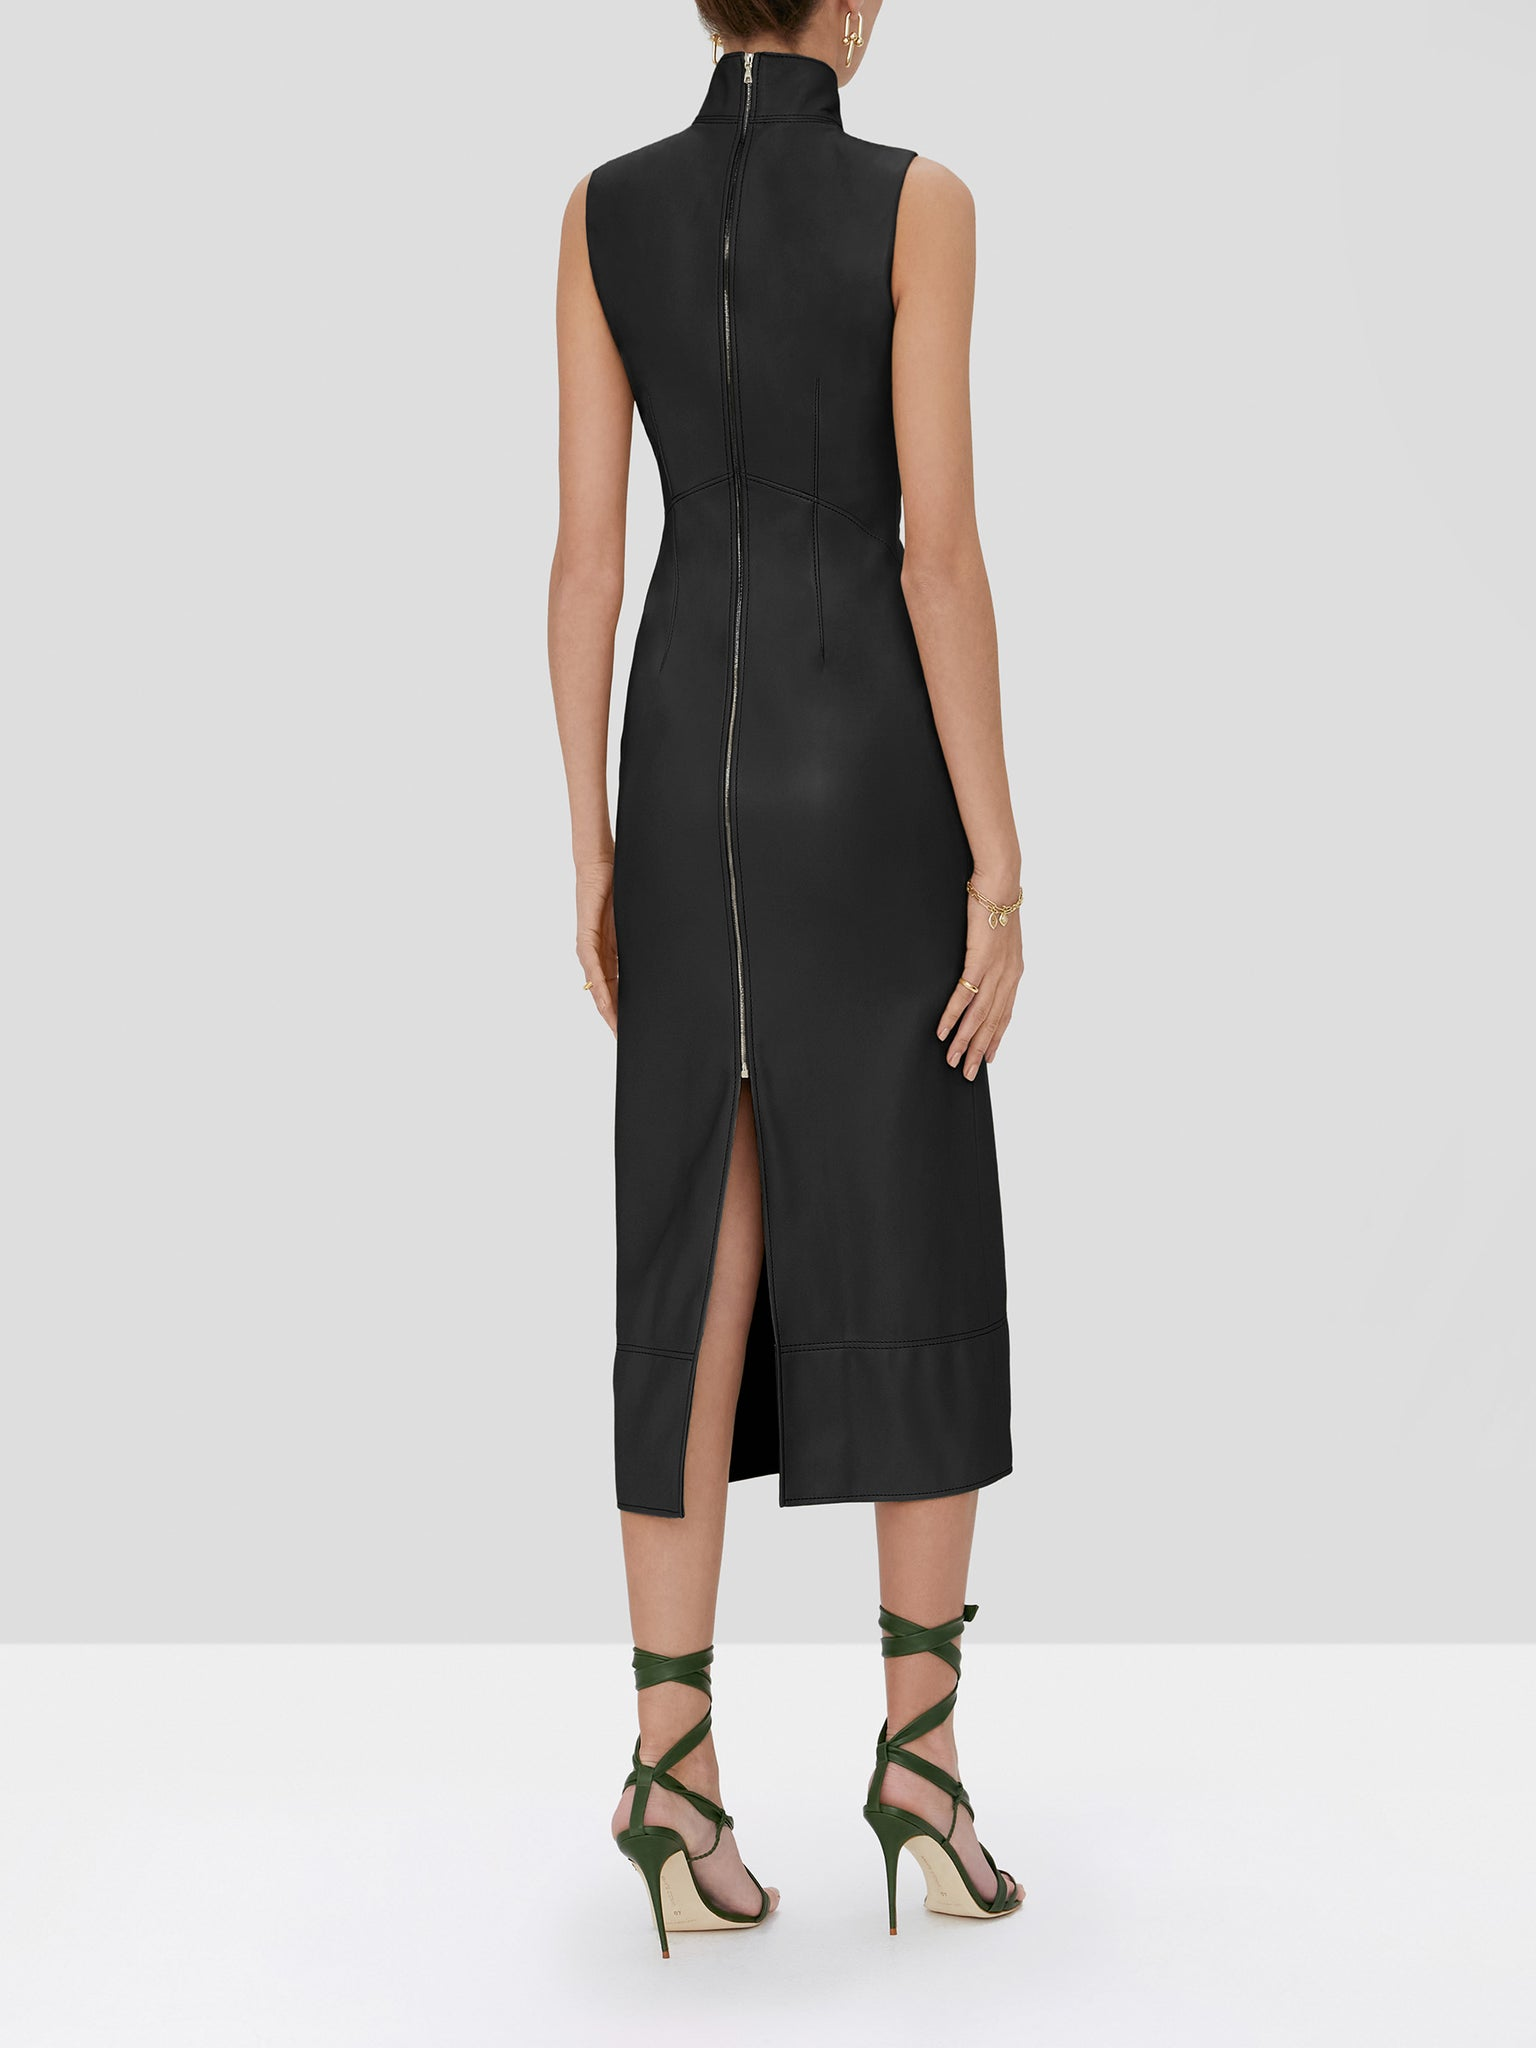 Farrah Vegan Leather Dress - Rear View